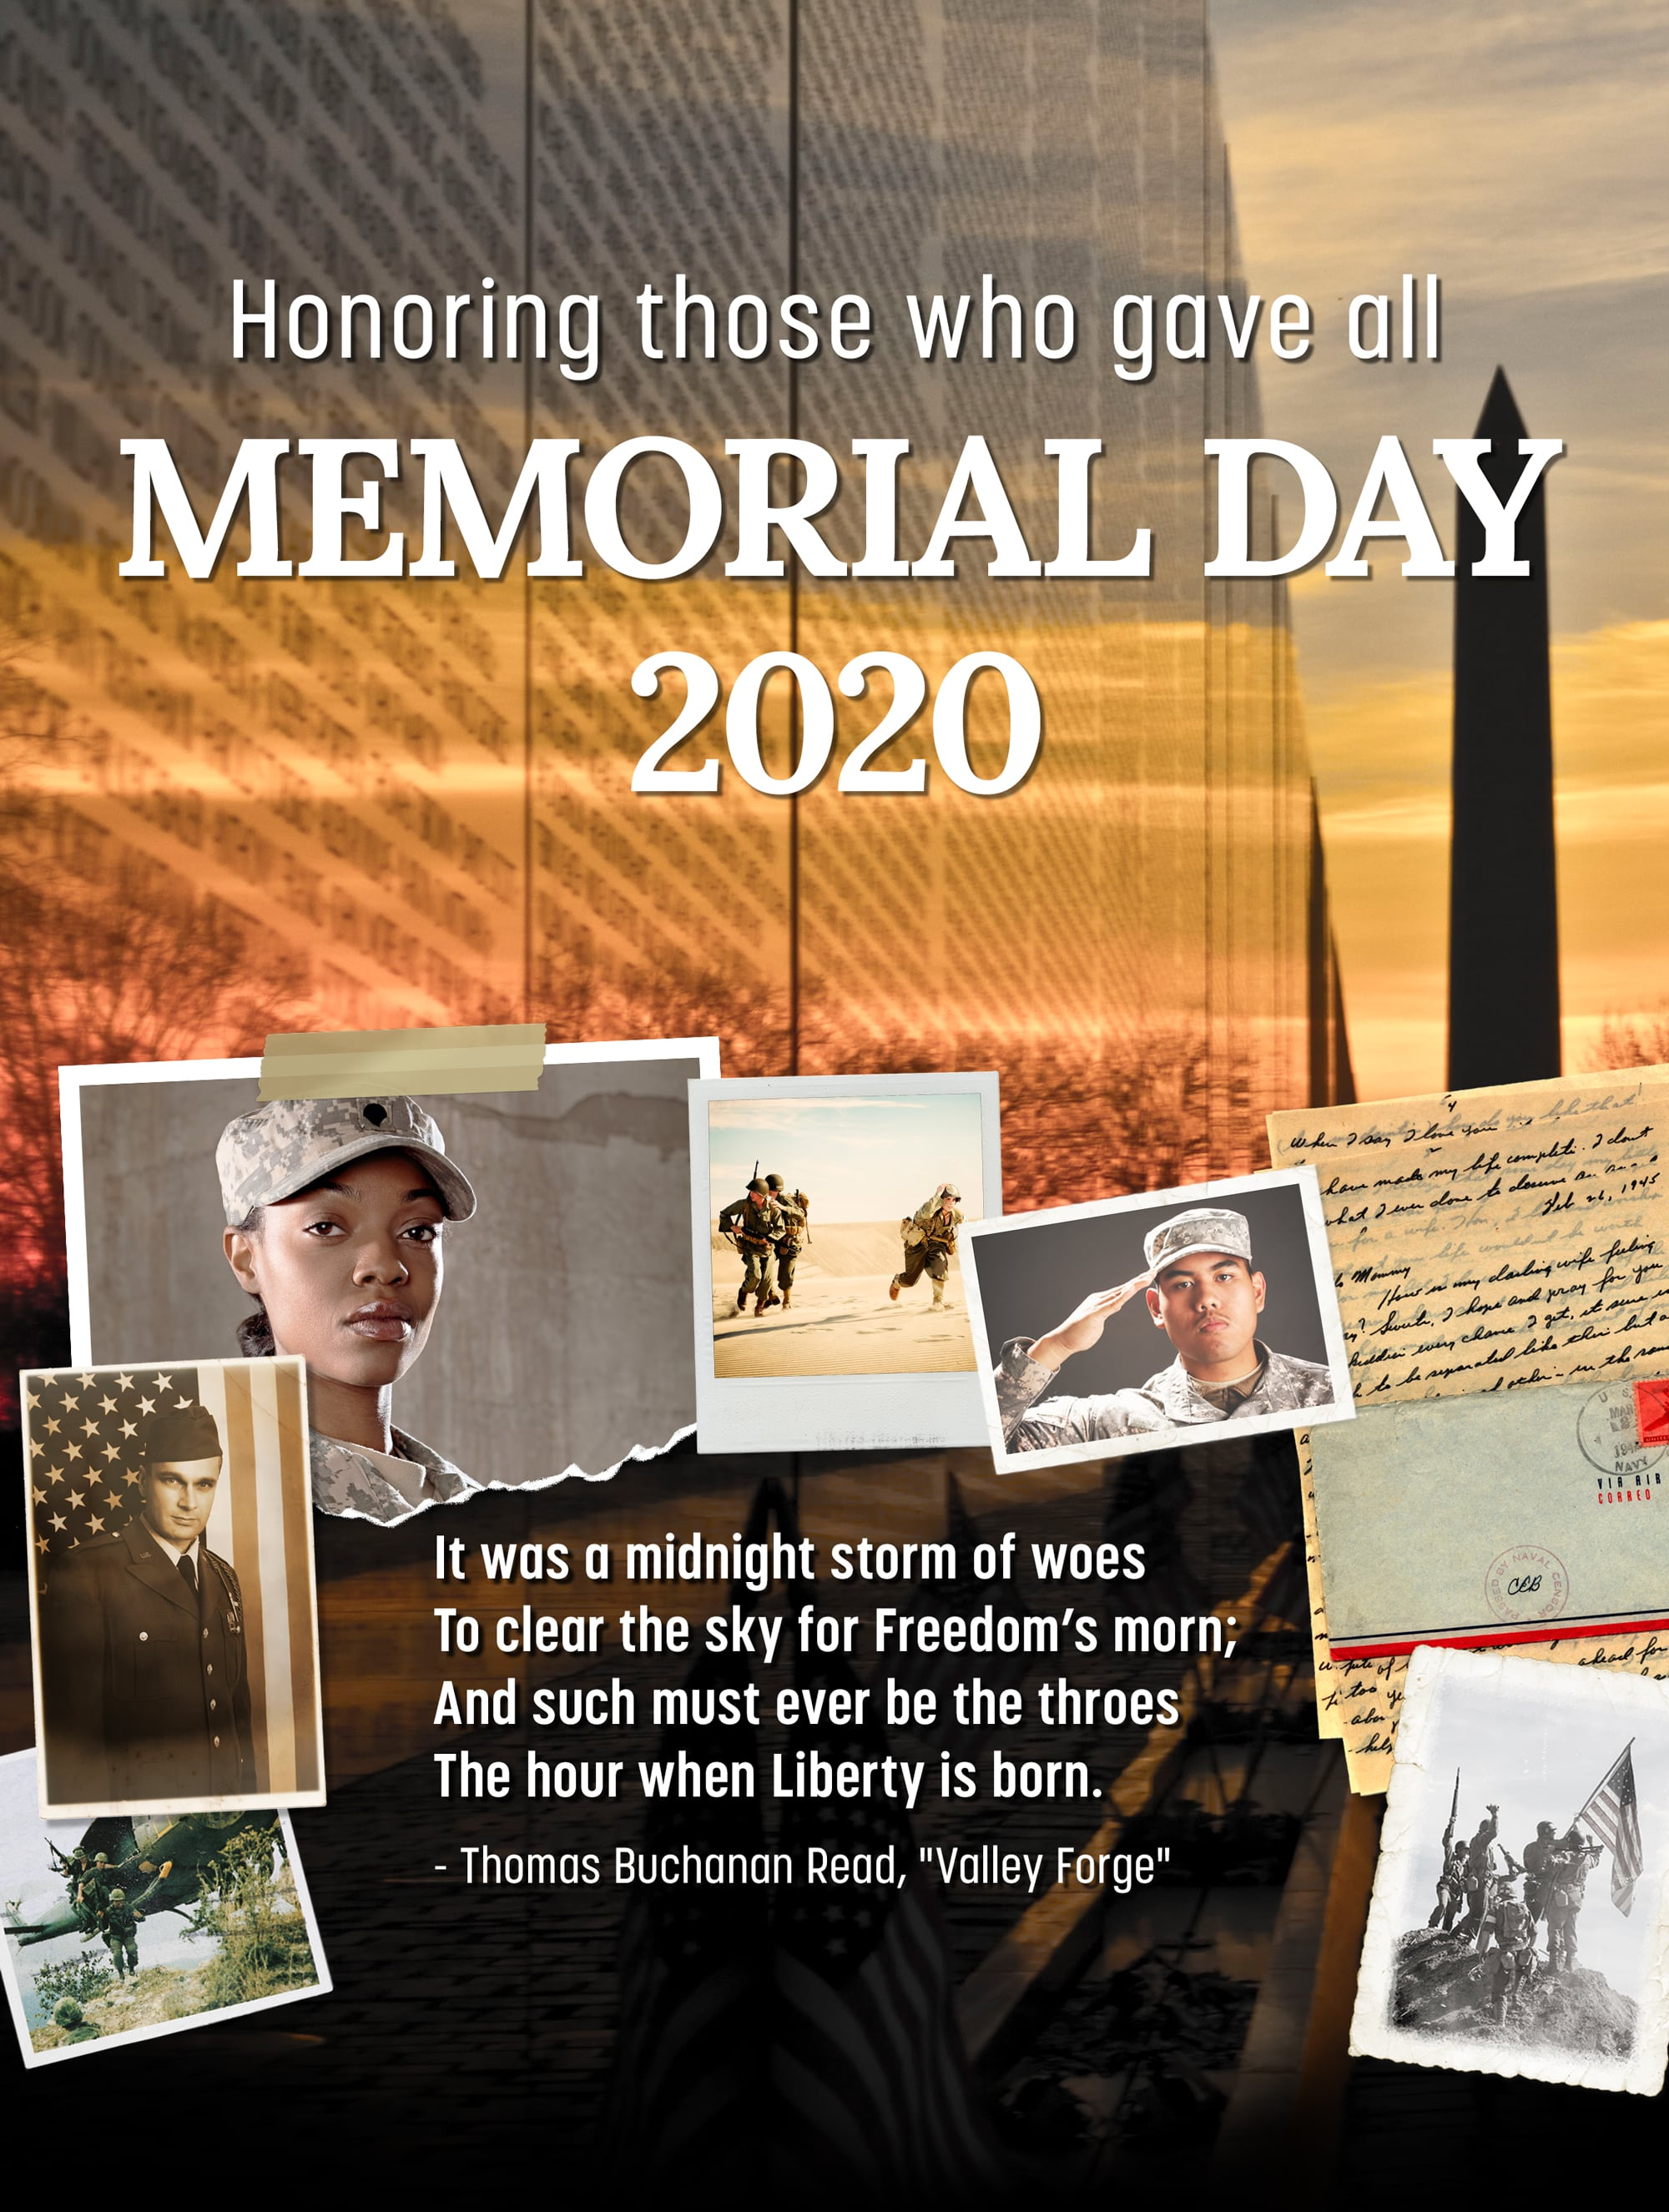 Honoring those who gave it all. Memorial Day 2020. It was a midnight storm of woes to clear the sky for freedom;s morn; and such most ever be the throes, the hour when liberty is born. by Thomas Buchana Read, Valley Forge